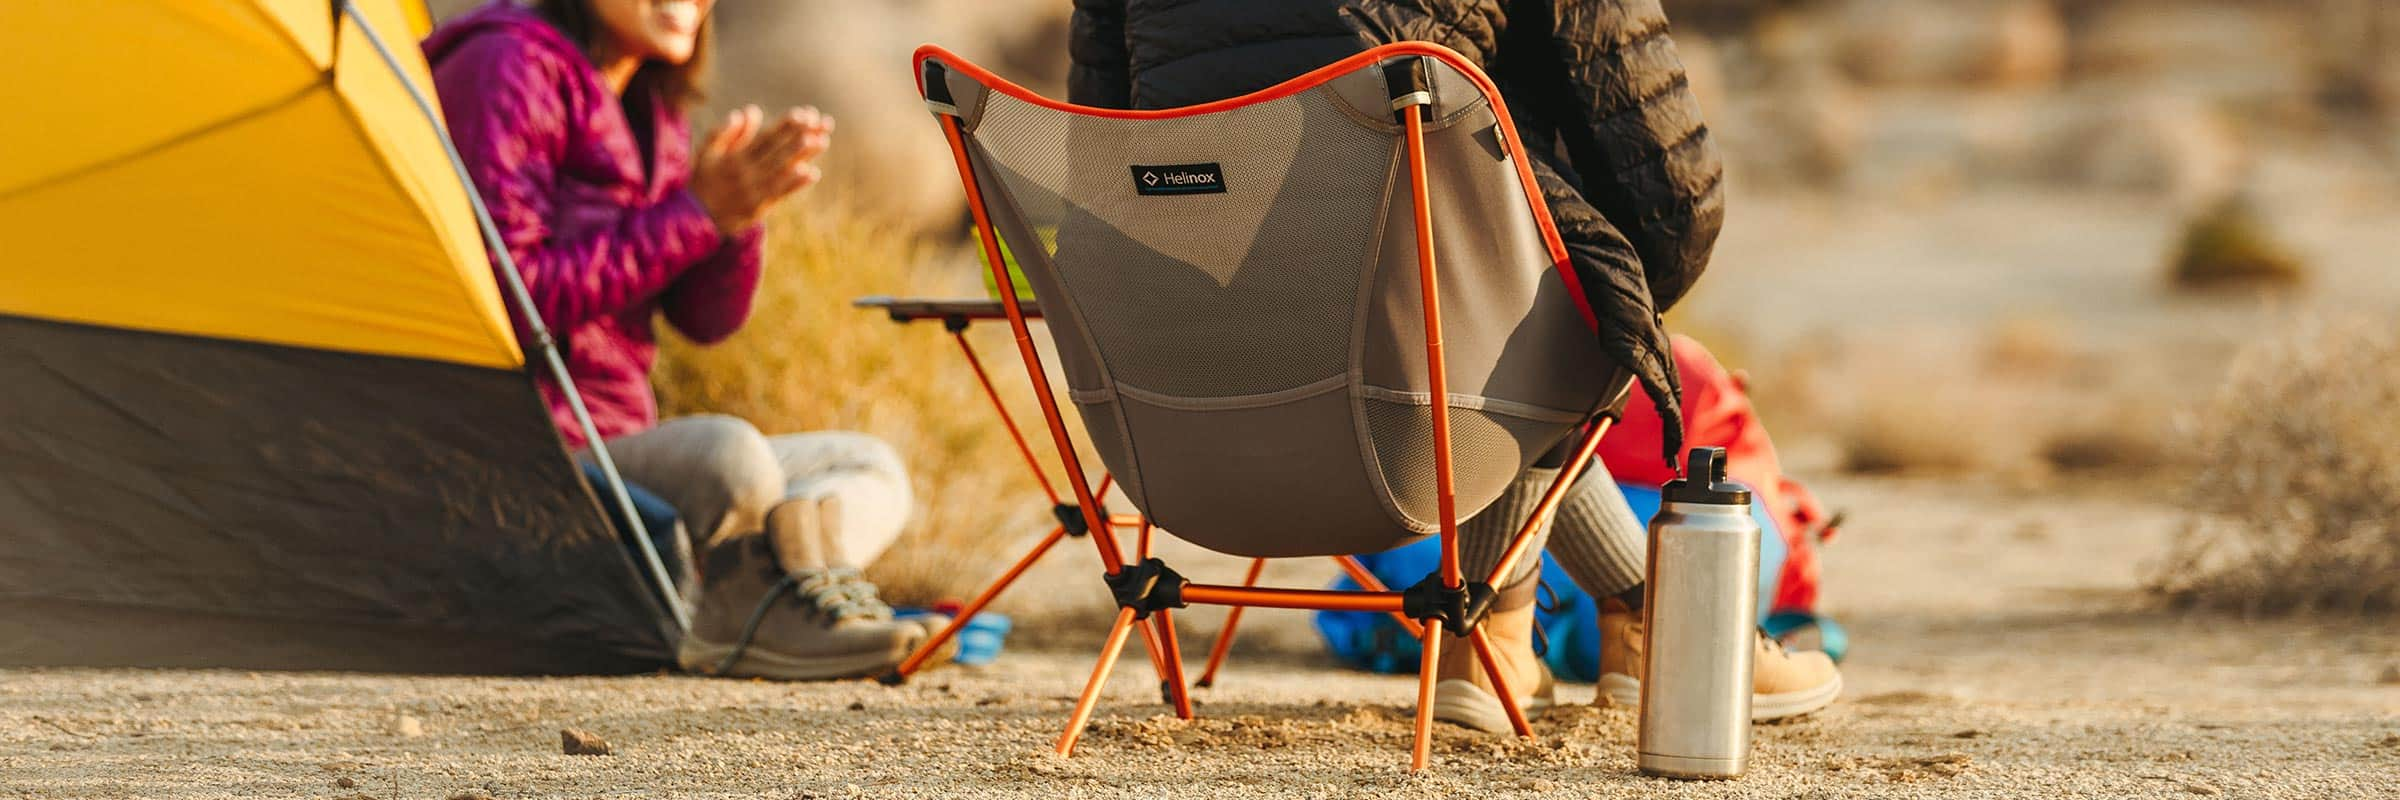 Camping, helinox. Helinox Chair One Review: Camp-Ready!